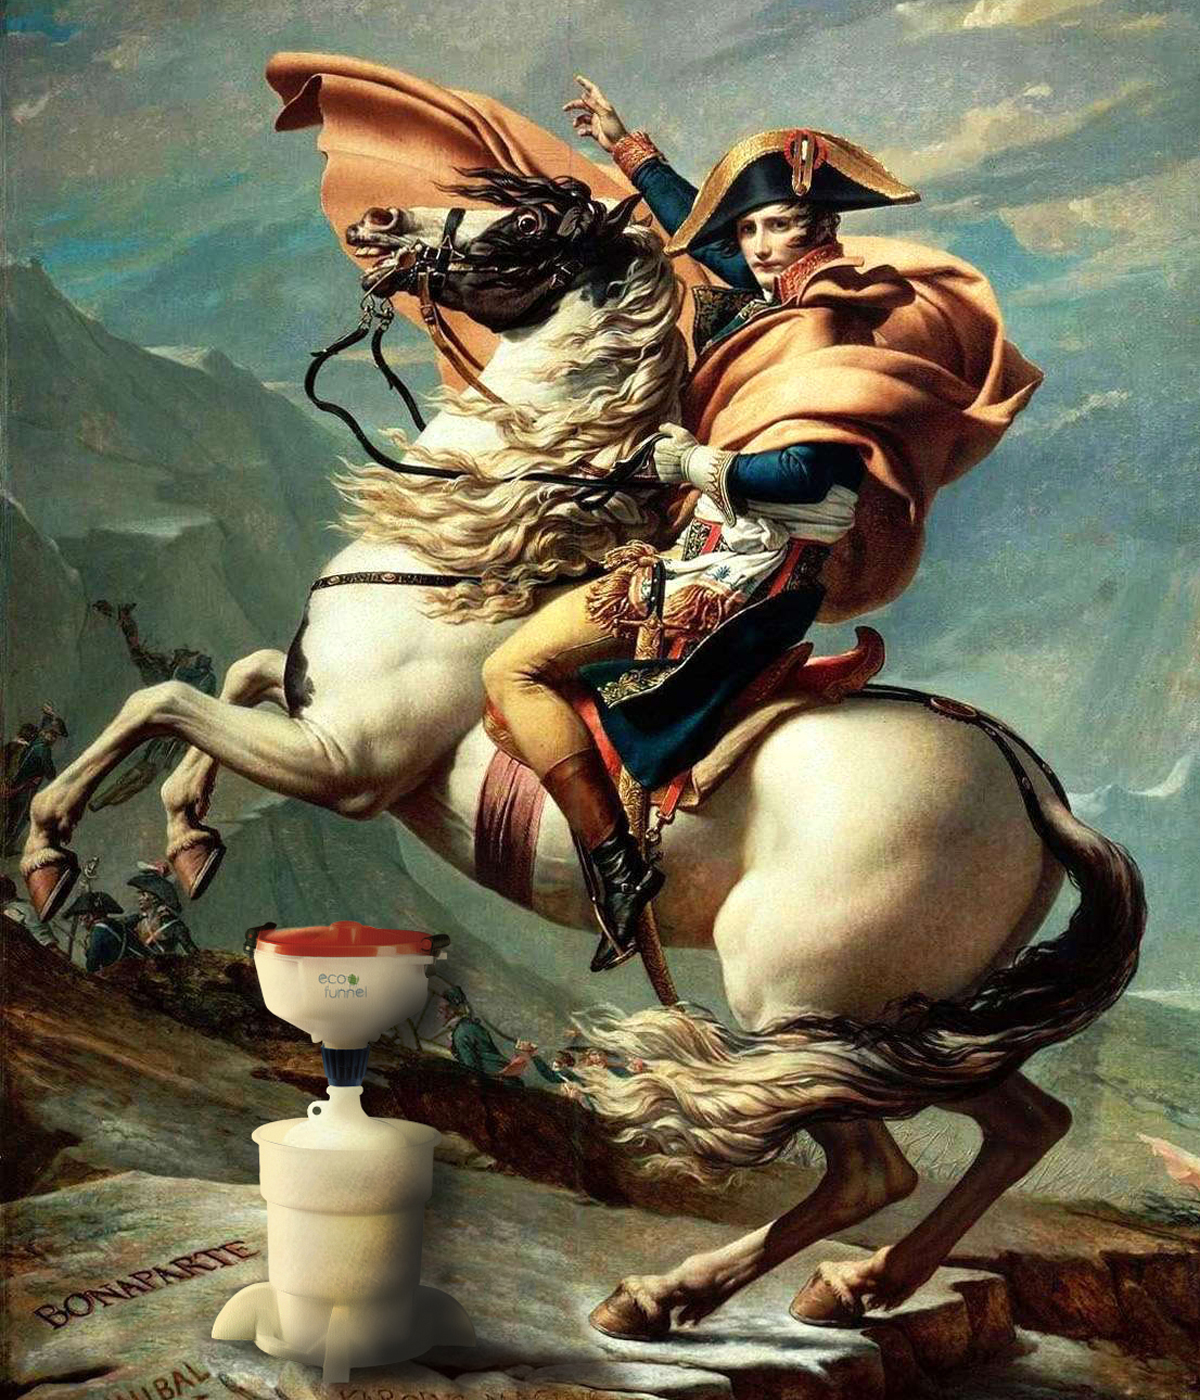 Napolean Crossing the Alps, Jacques-Louis David